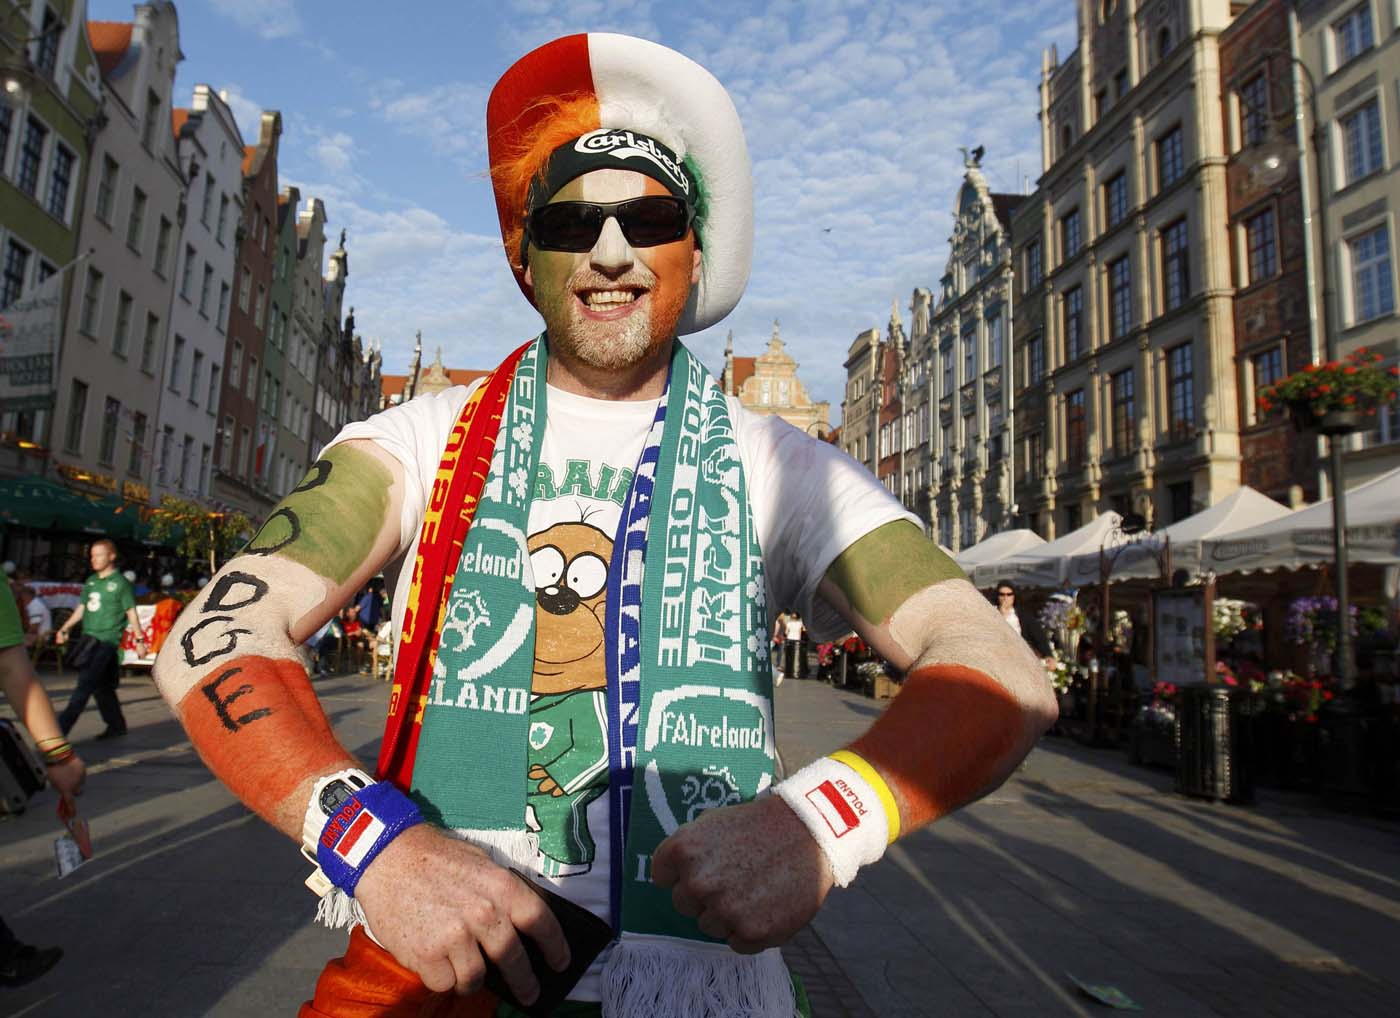 An Irish soccer fan posses for a photo at Long Market in Gdansk, June 13, 2012. Peter Andrews/Reuters)